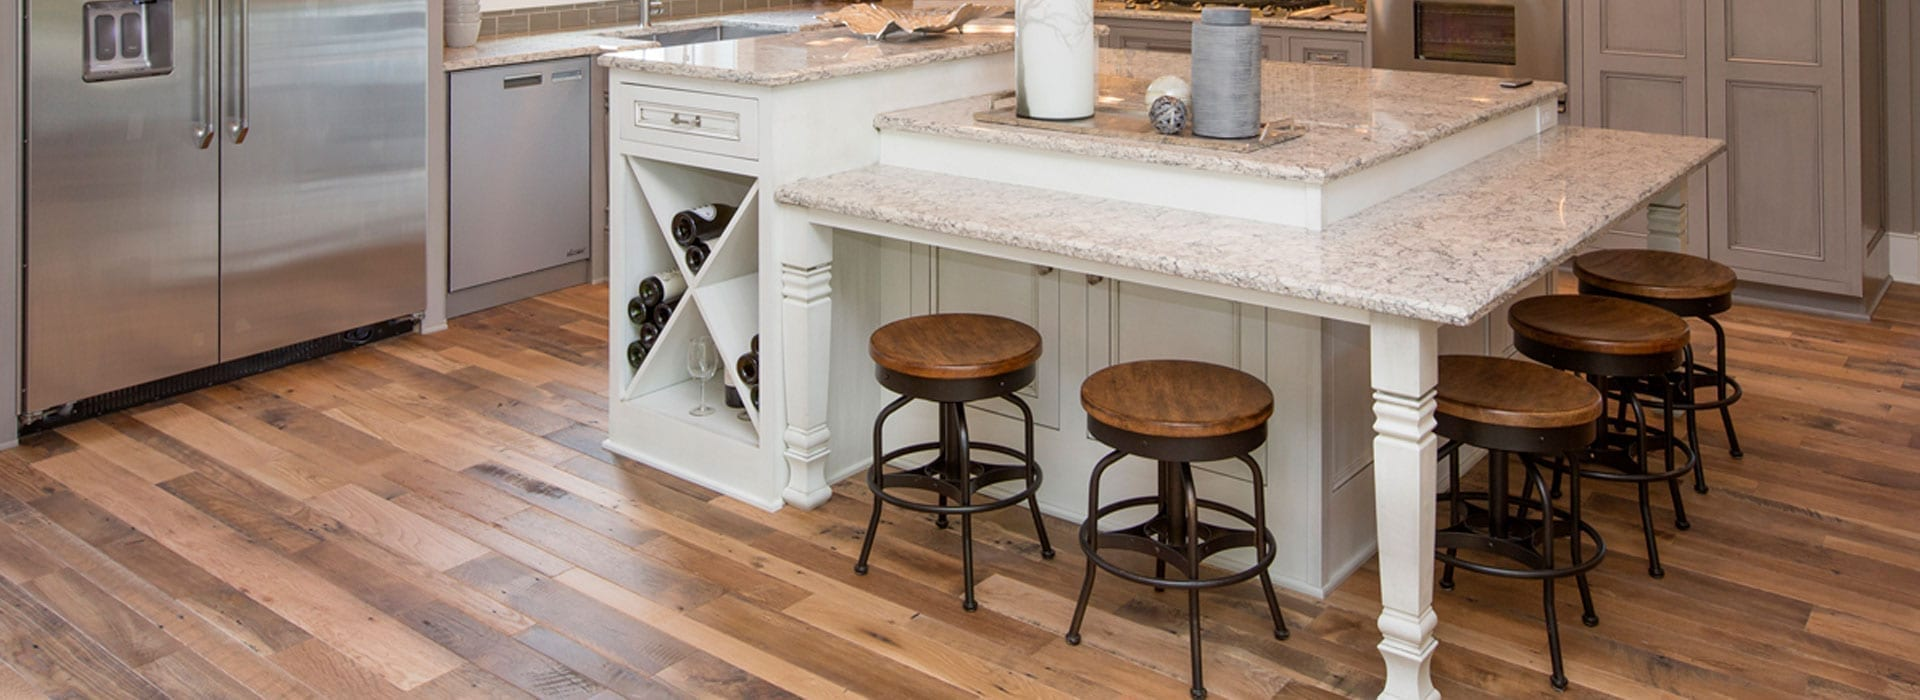 5 Important Questions To Ask When Shopping For New Kitchen Floors